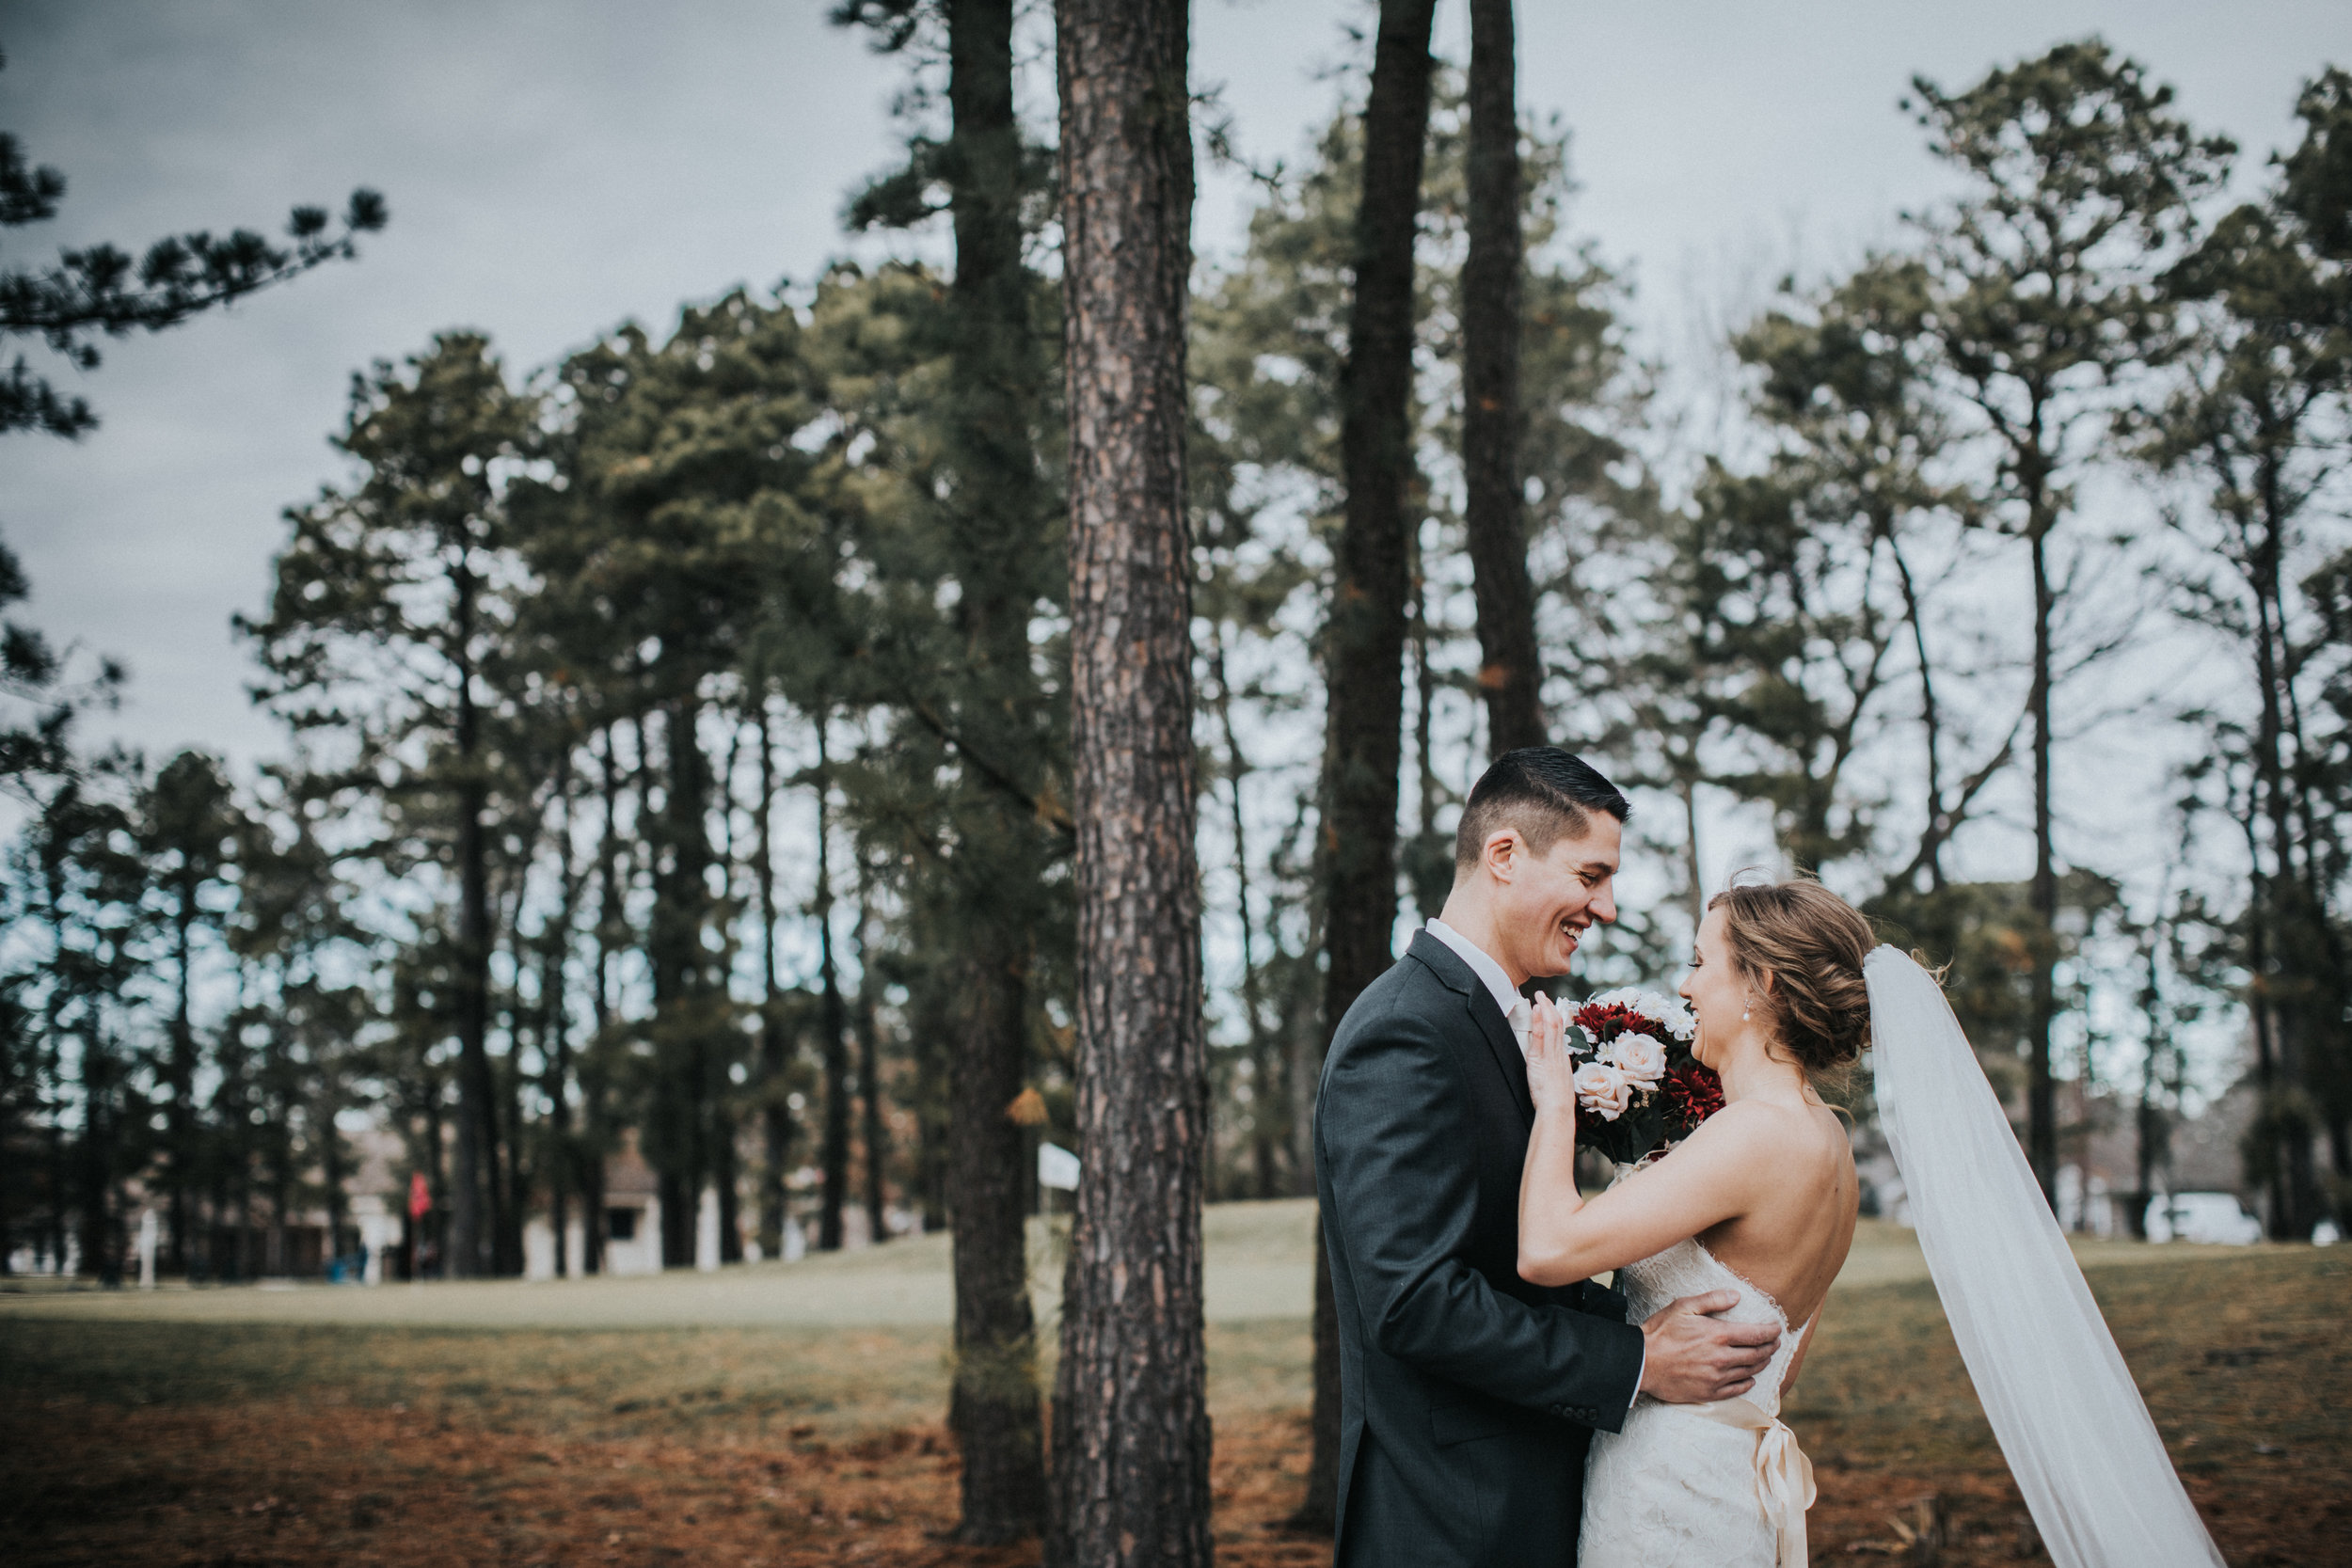 New-Jersey-Wedding-Photographer-JennaLynnPhotography-Blue-Heron-Pines-Sami+Nick-FirstLook-30.jpg